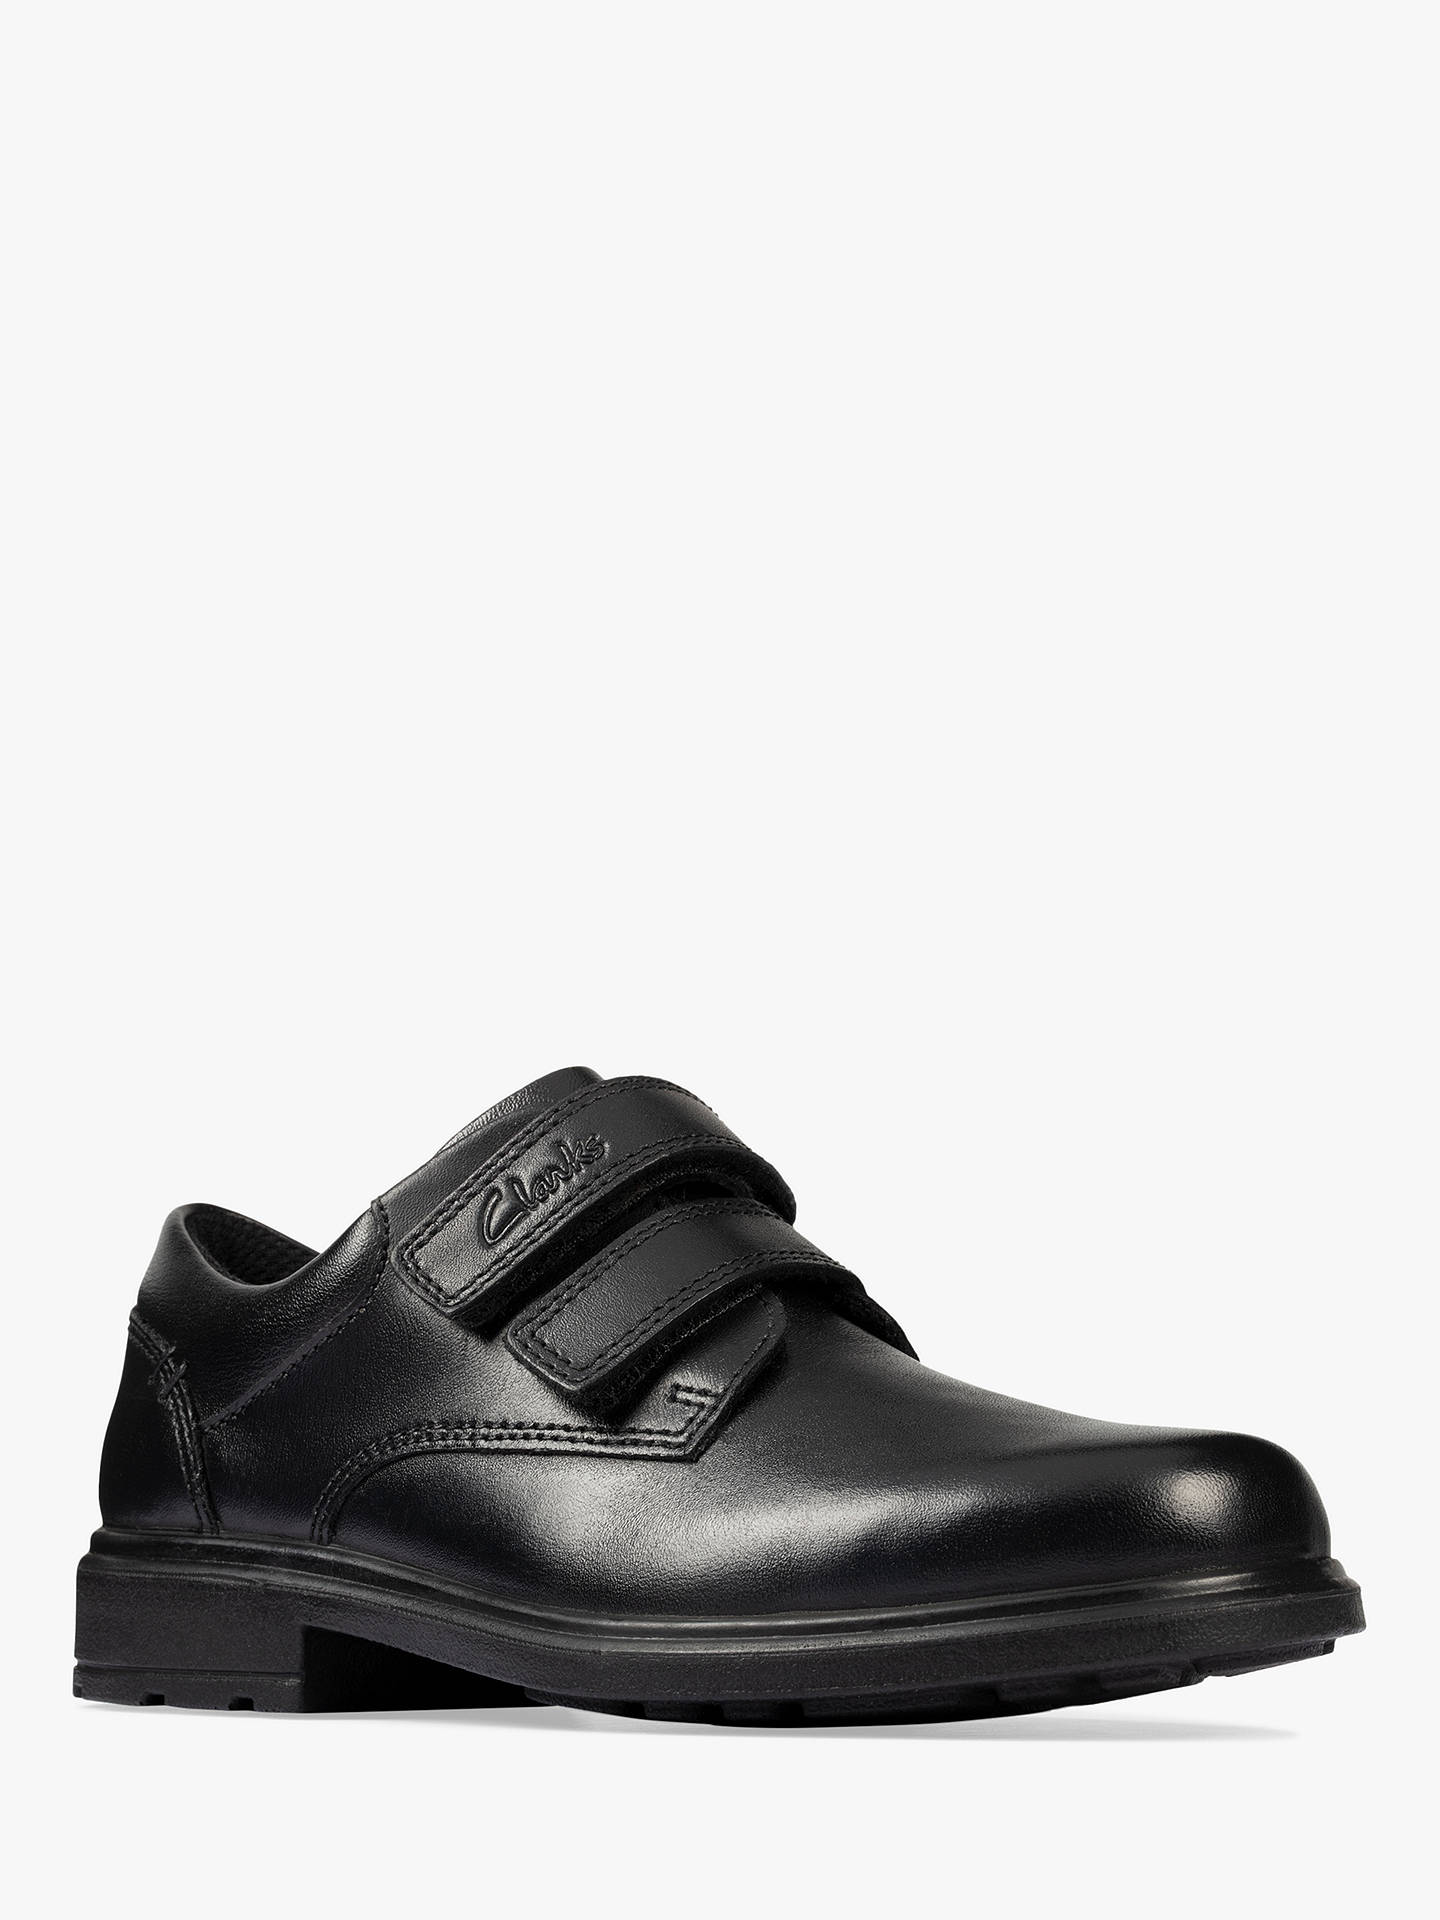 Buy Clarks Children's Remi Pace Leather School Shoes, Black, 1F Online at johnlewis.com